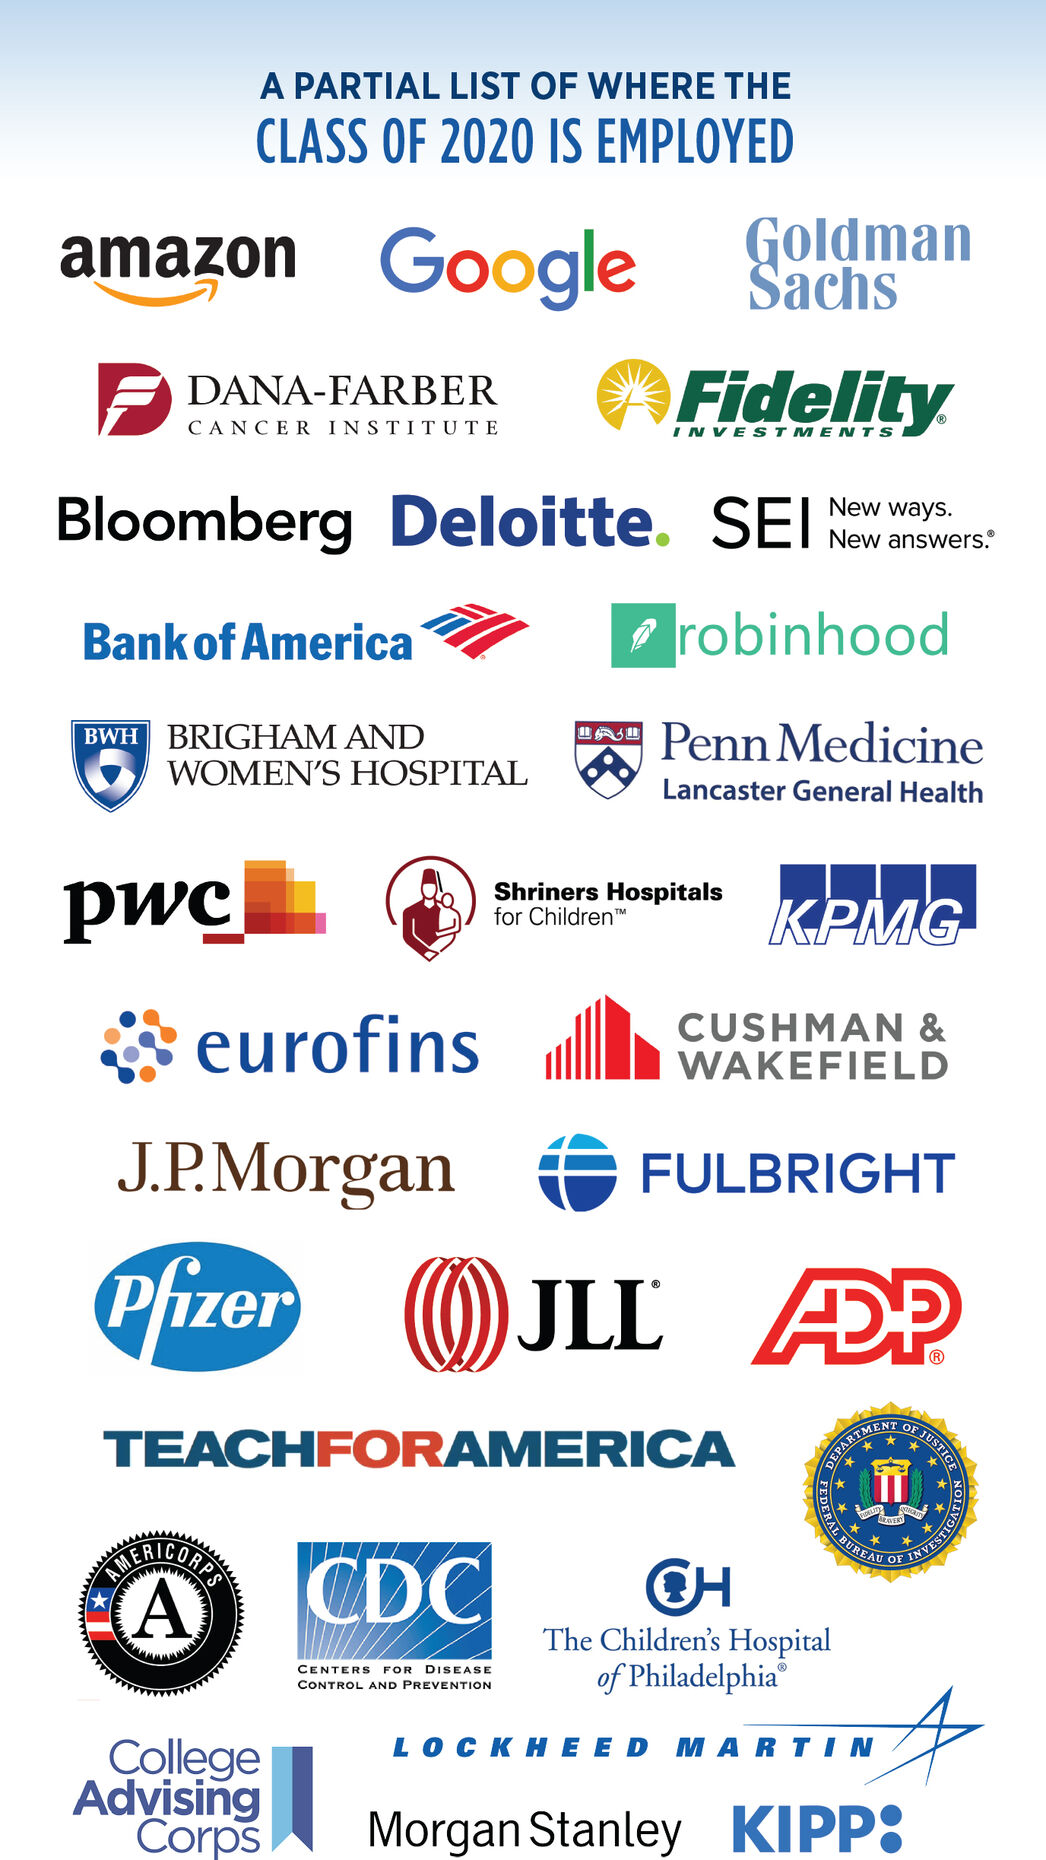 A partial list of employers where the members of F&M's class of 2020 are employed